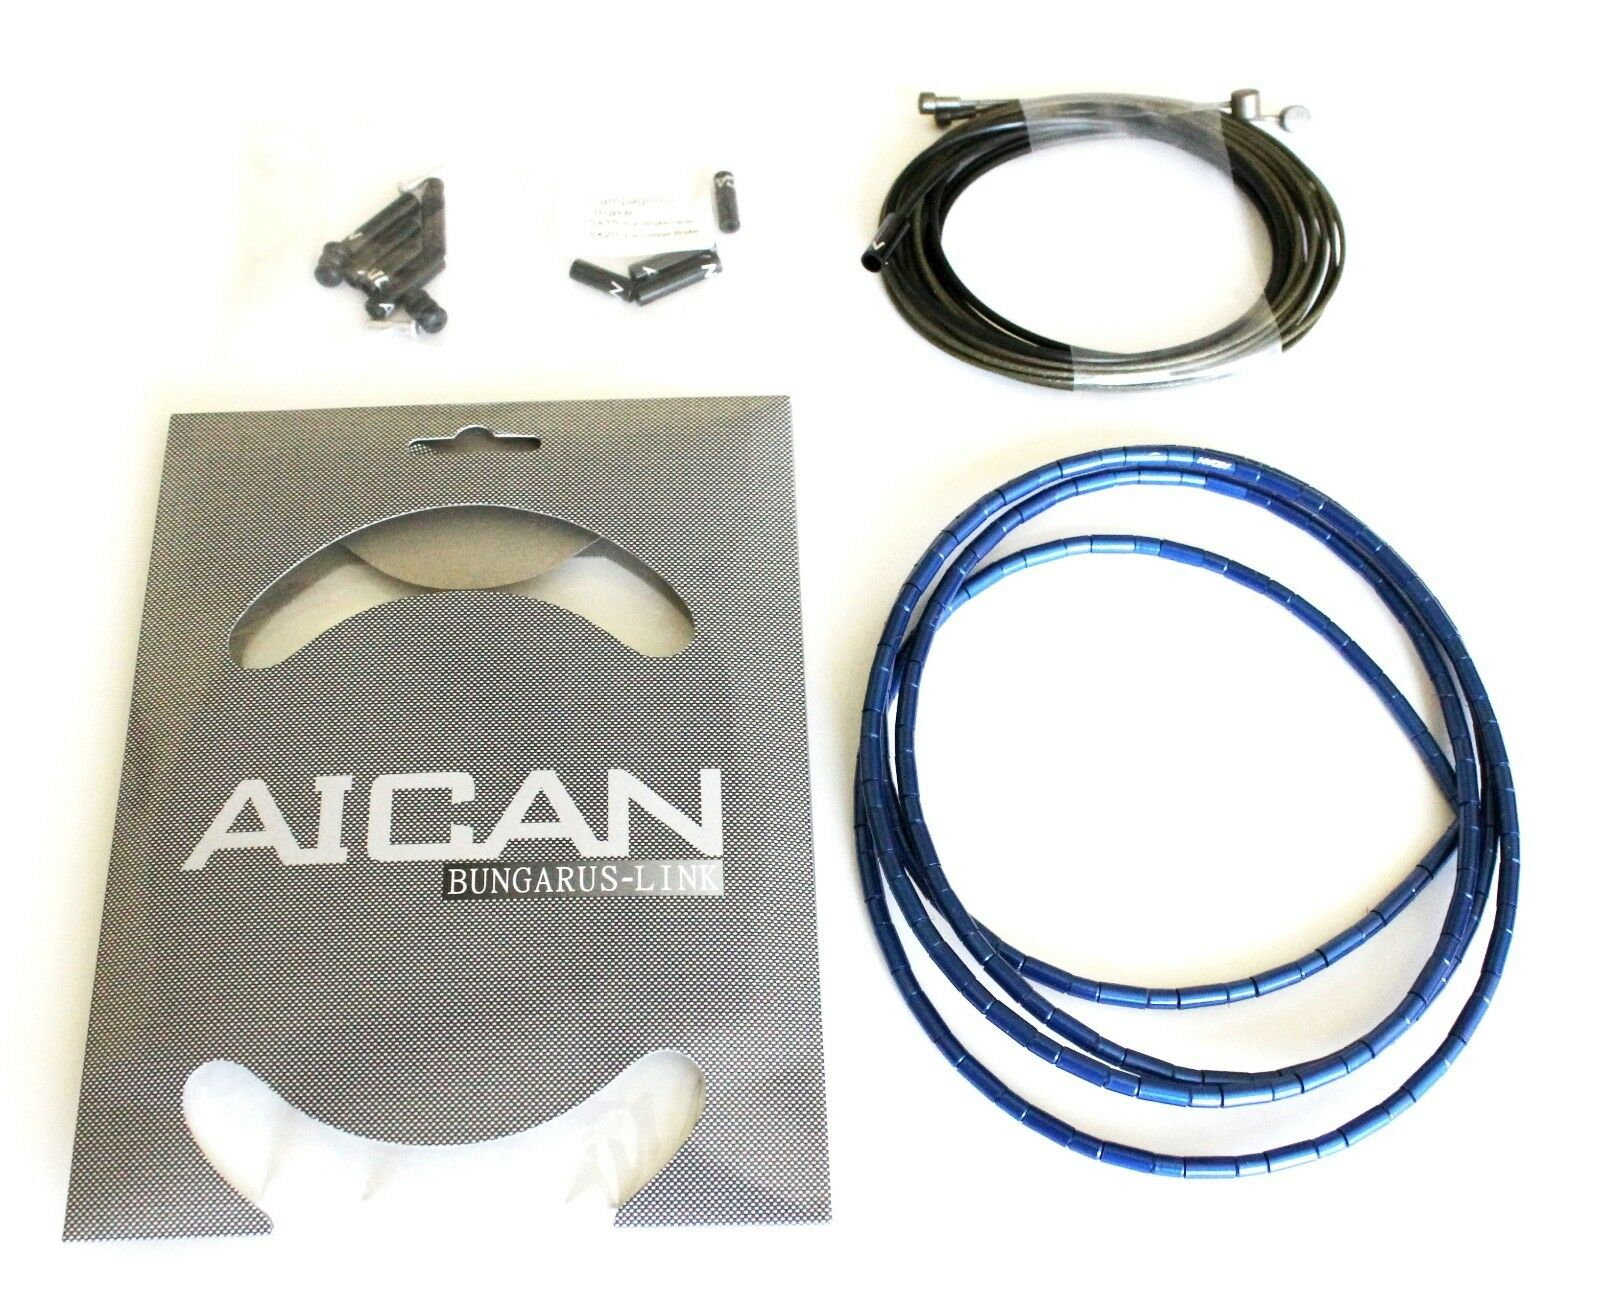 AICAN Superlight Bungarus BRAKE Cable Housing set kit Nokon, I-Link,blueee